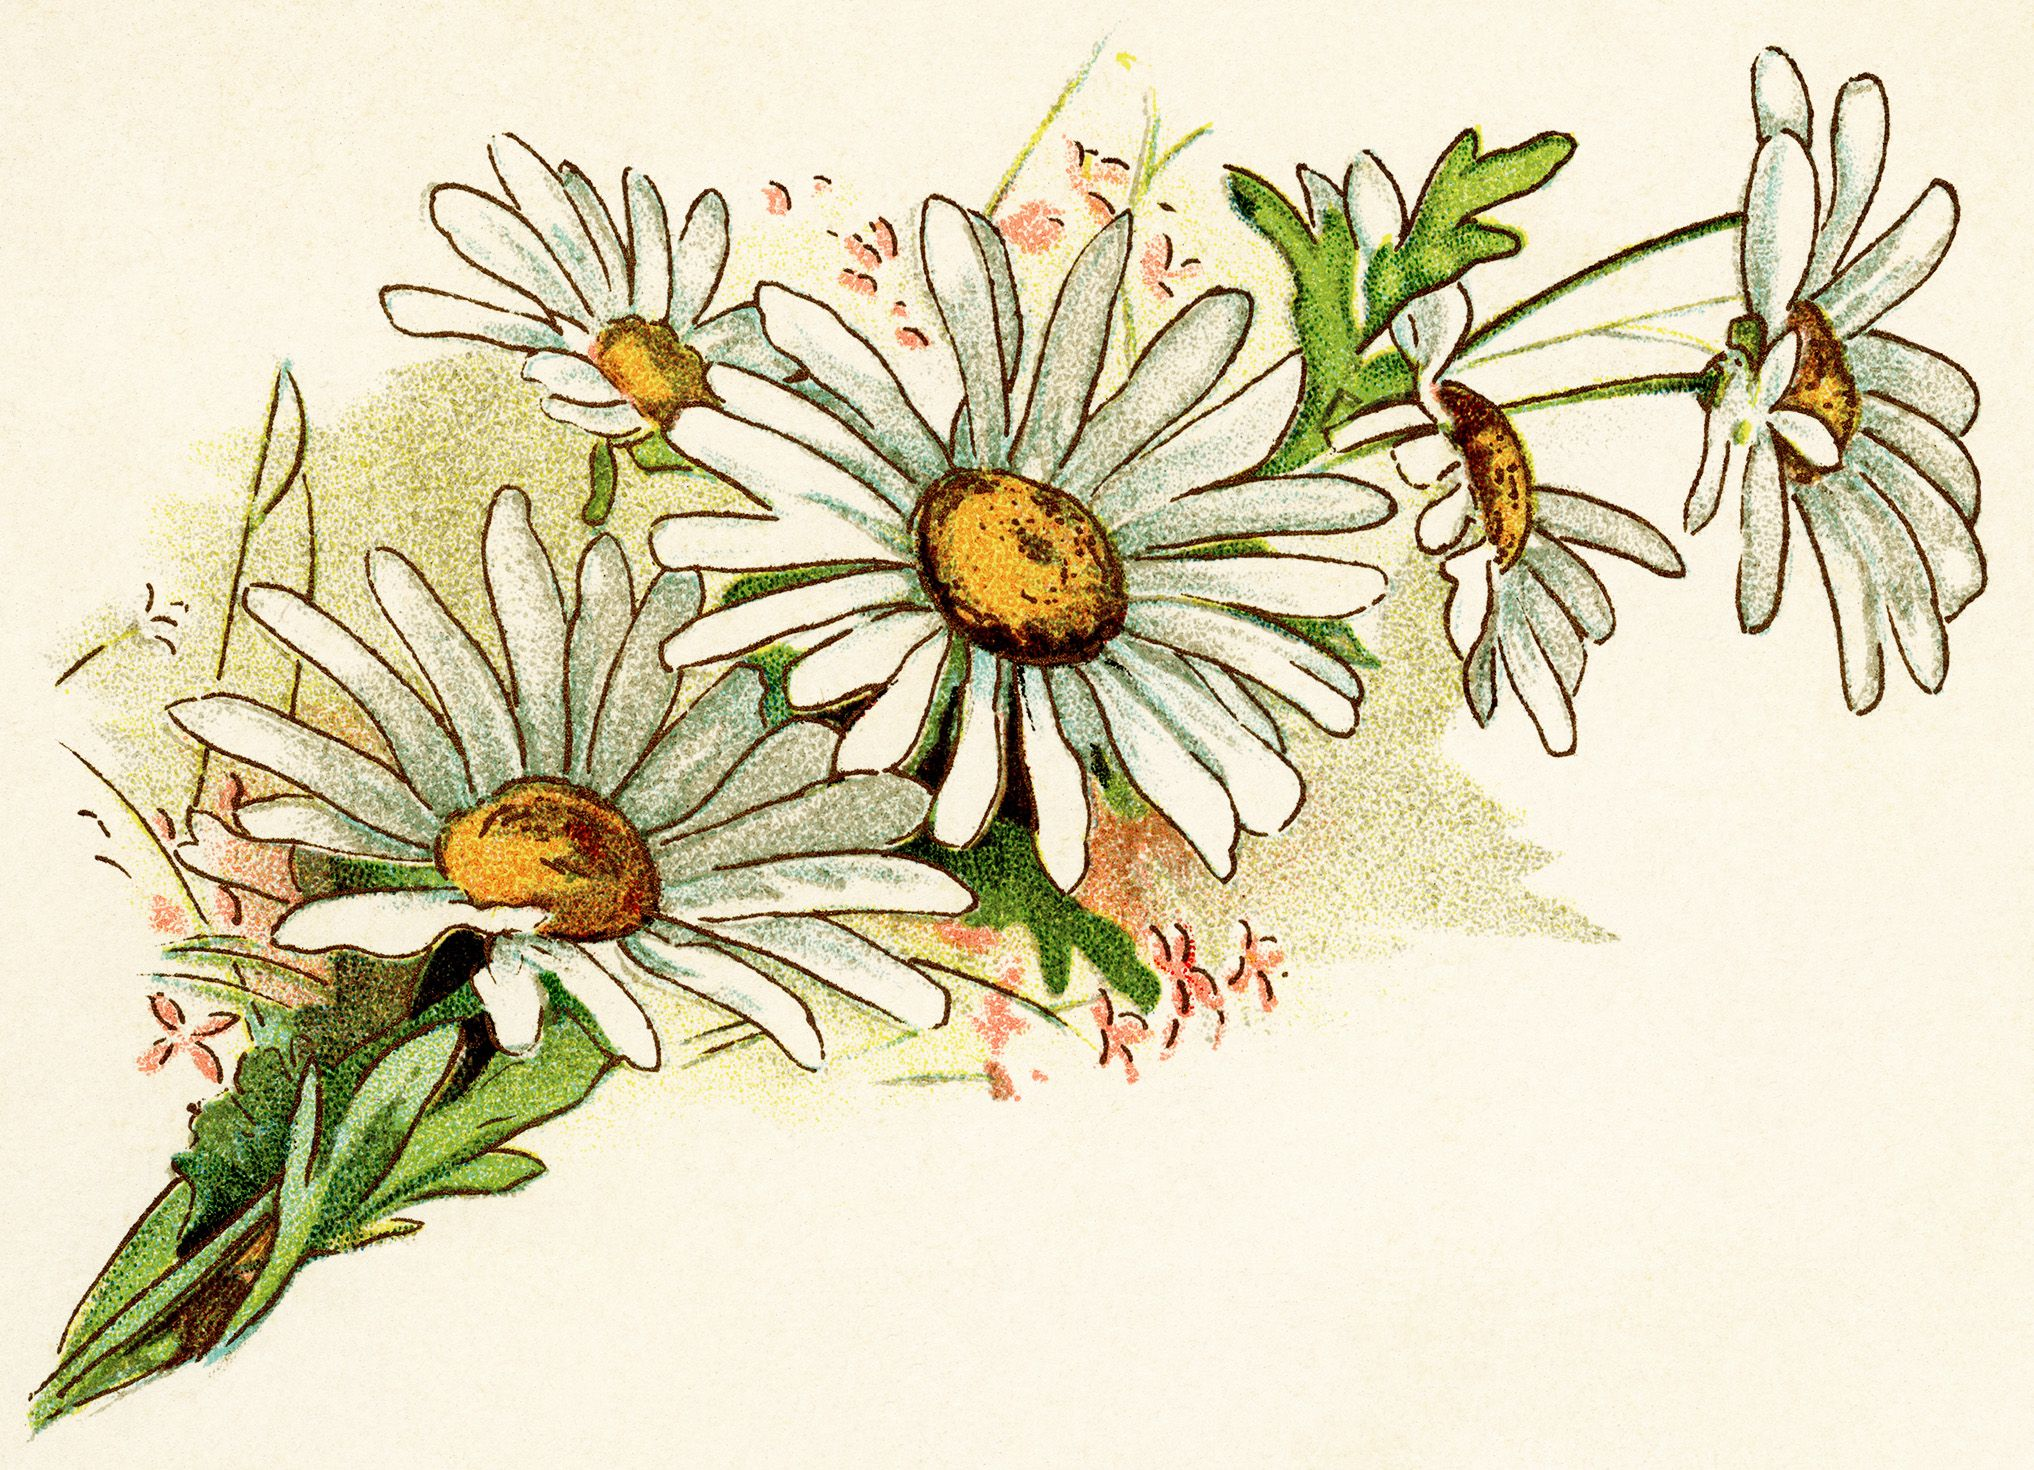 medium resolution of vintage daisy image free digital floral graphics cluster of daisies illustration old fashioned daisy clipart bouquet of daisies printable